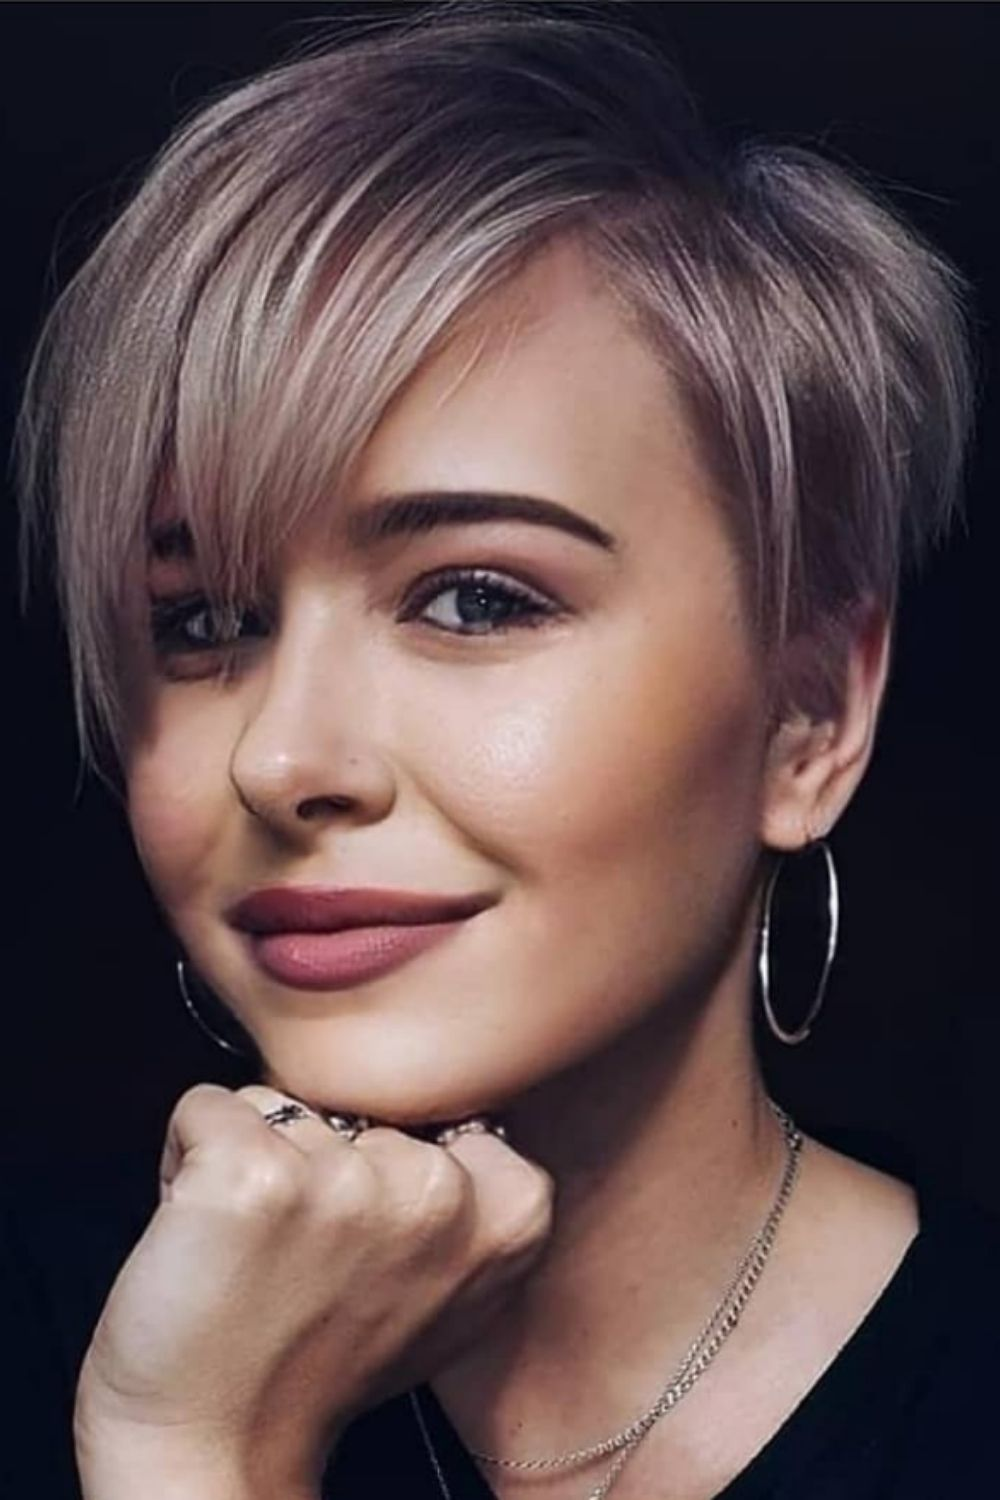 Pixie Hairstyle | Mind-Blowing Short Hairstyles for Fine Hair